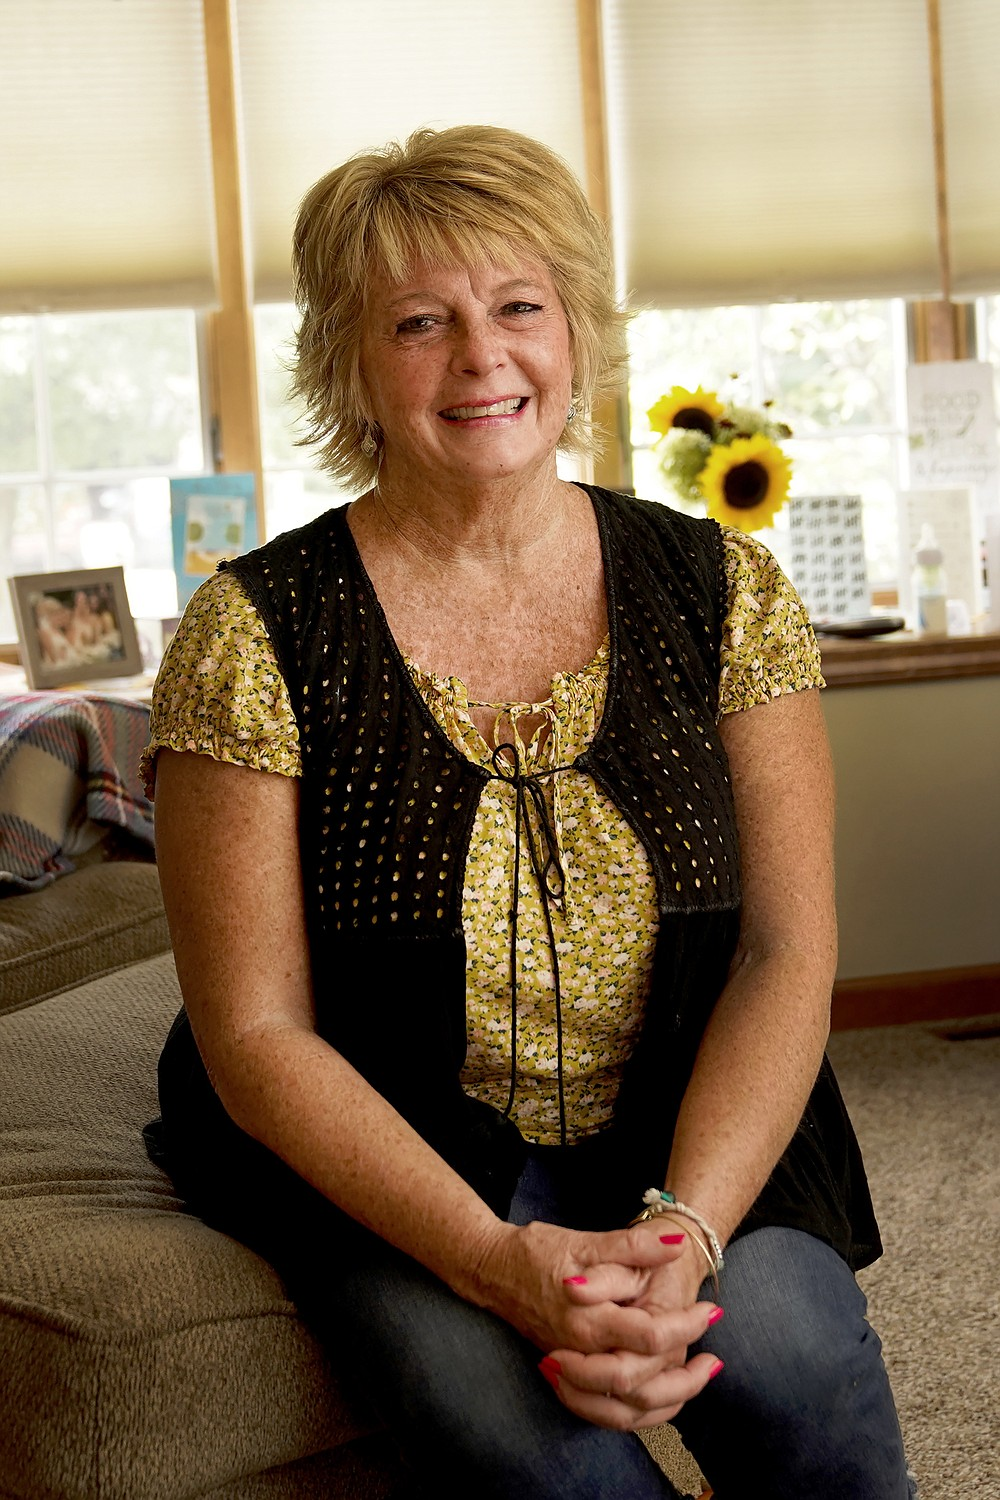 """Kay Orzechowicz poses Wednesday, Sept. 2, 2020, for a portrait at her Griffith, Ind., home. After 35 years of teaching, Orzechowicz said COVID-19 """"pushed her over the edge"""" to retire from northwest Indiana's Griffith High School at the end of July.  (AP Photo/Charles Rex Arbogast)"""